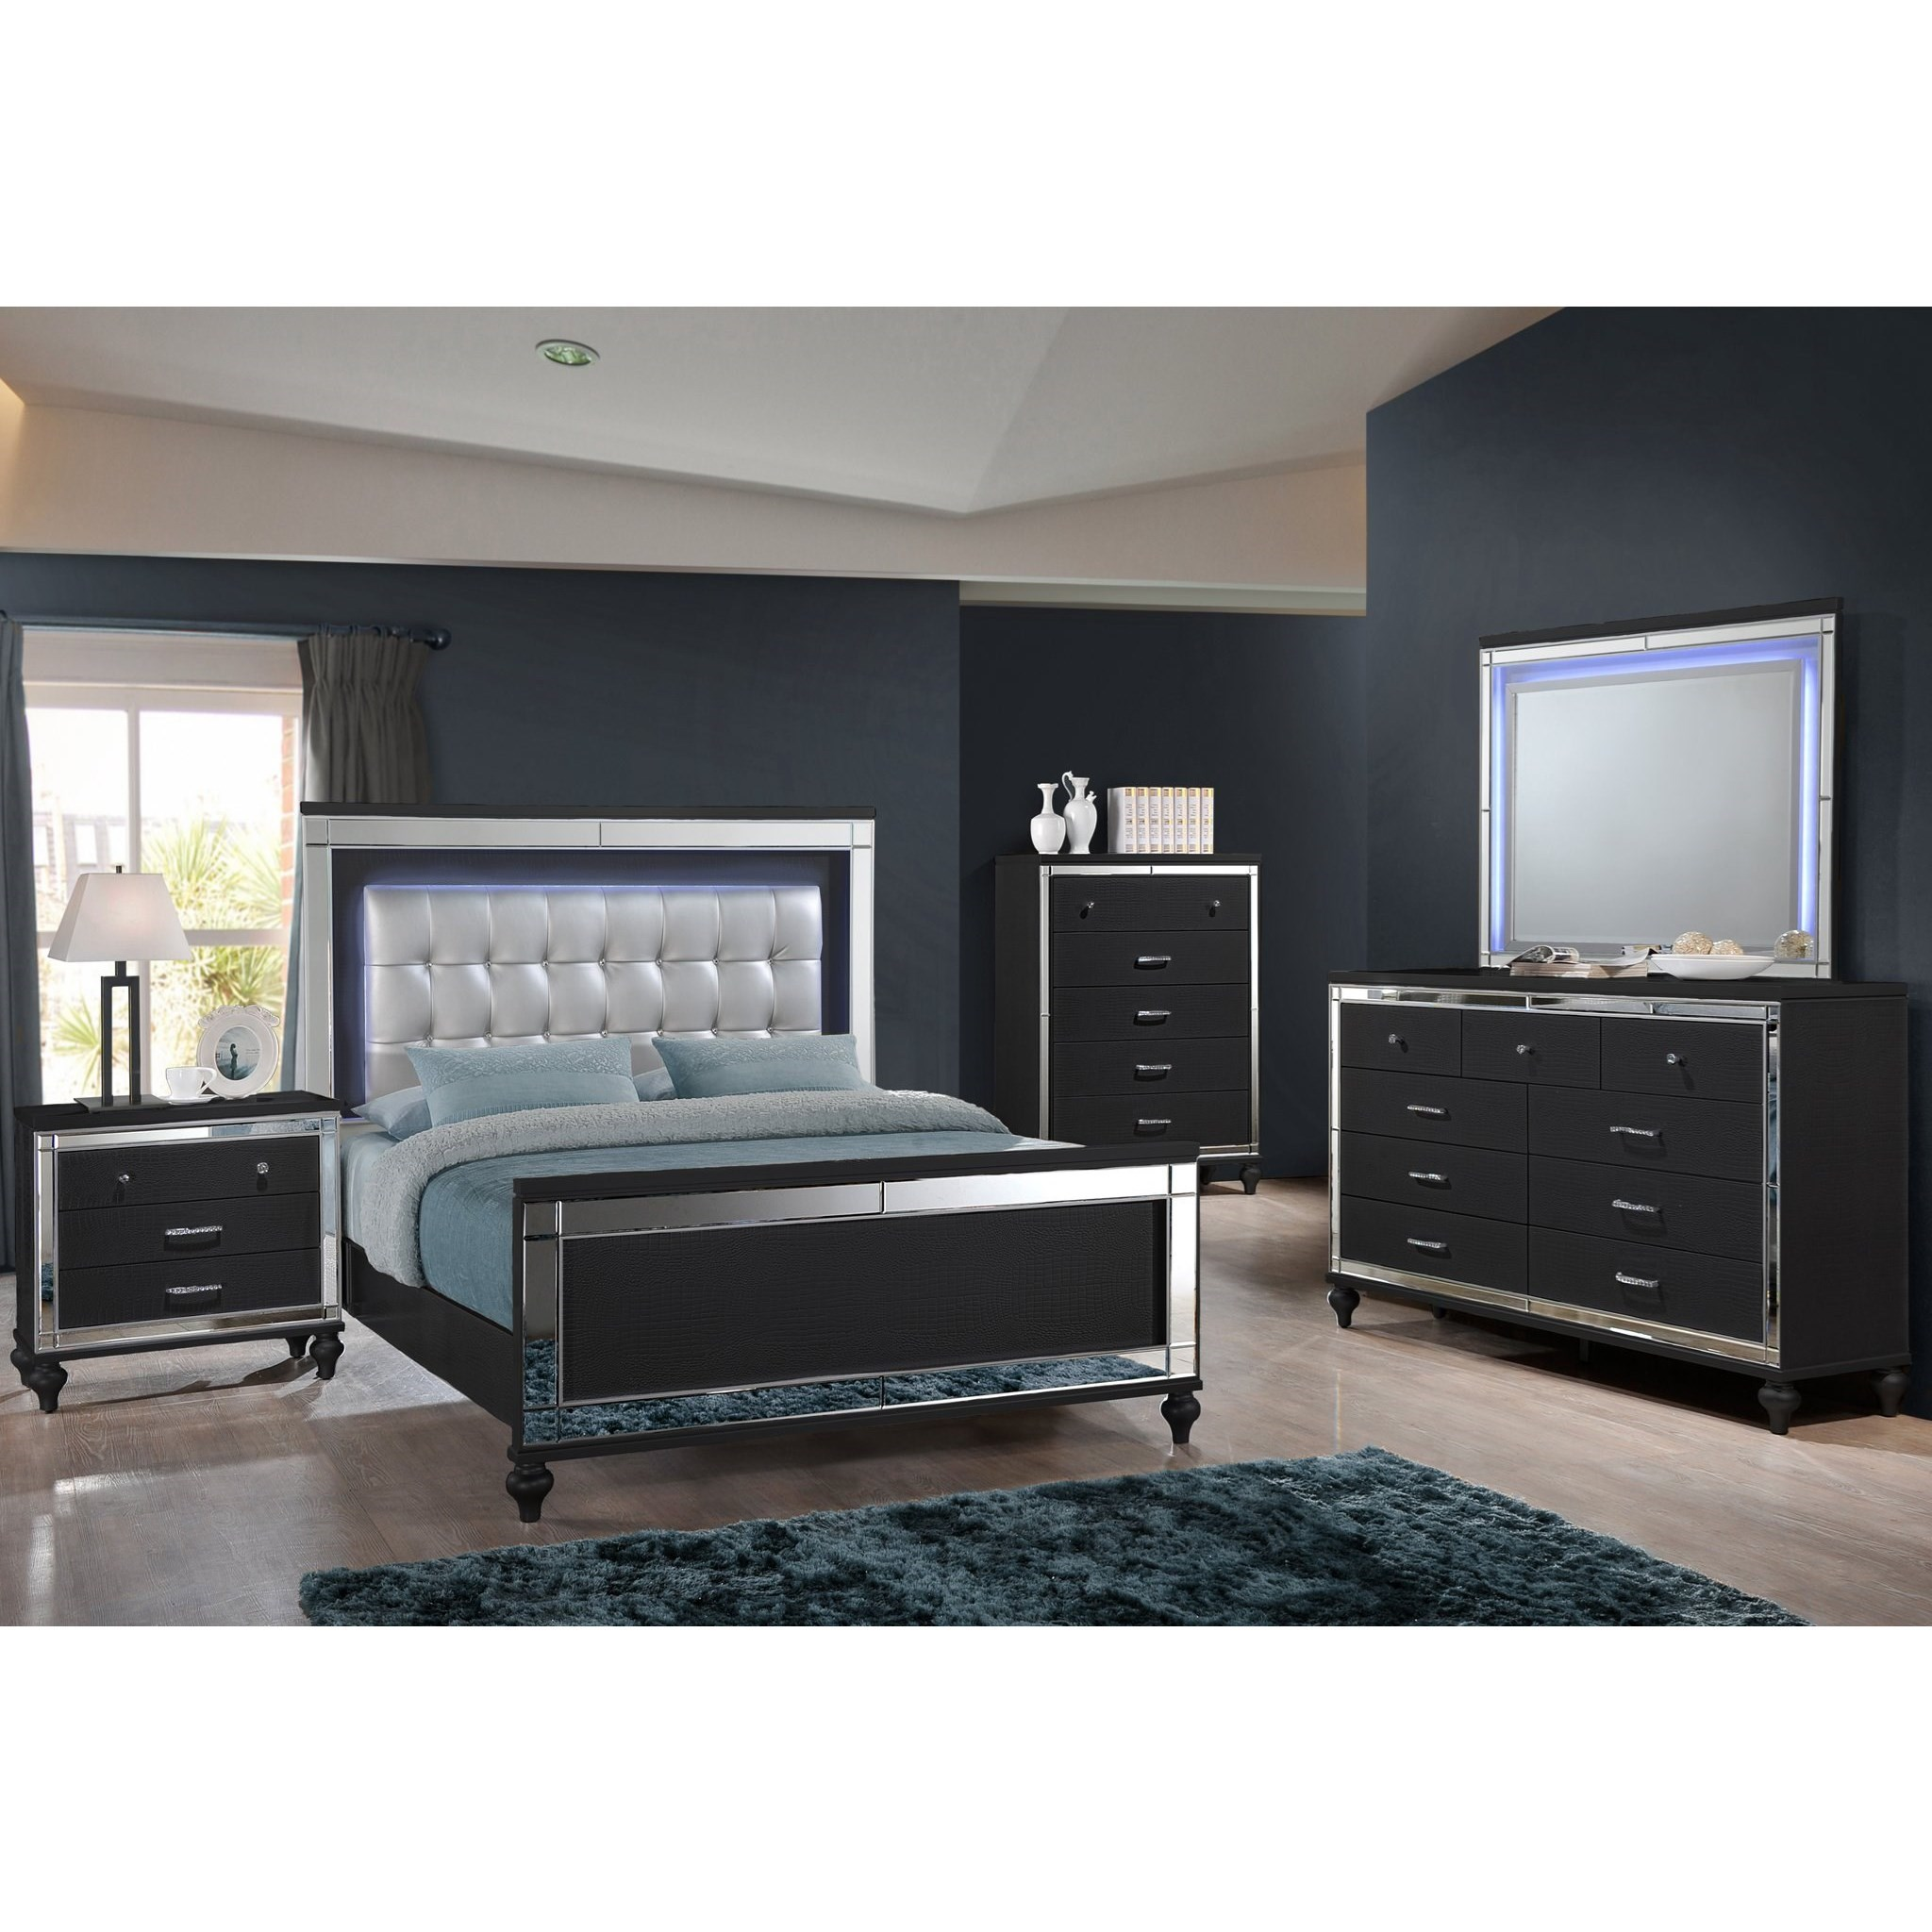 Valentino King Bedroom Group by New Classic at Beck's Furniture